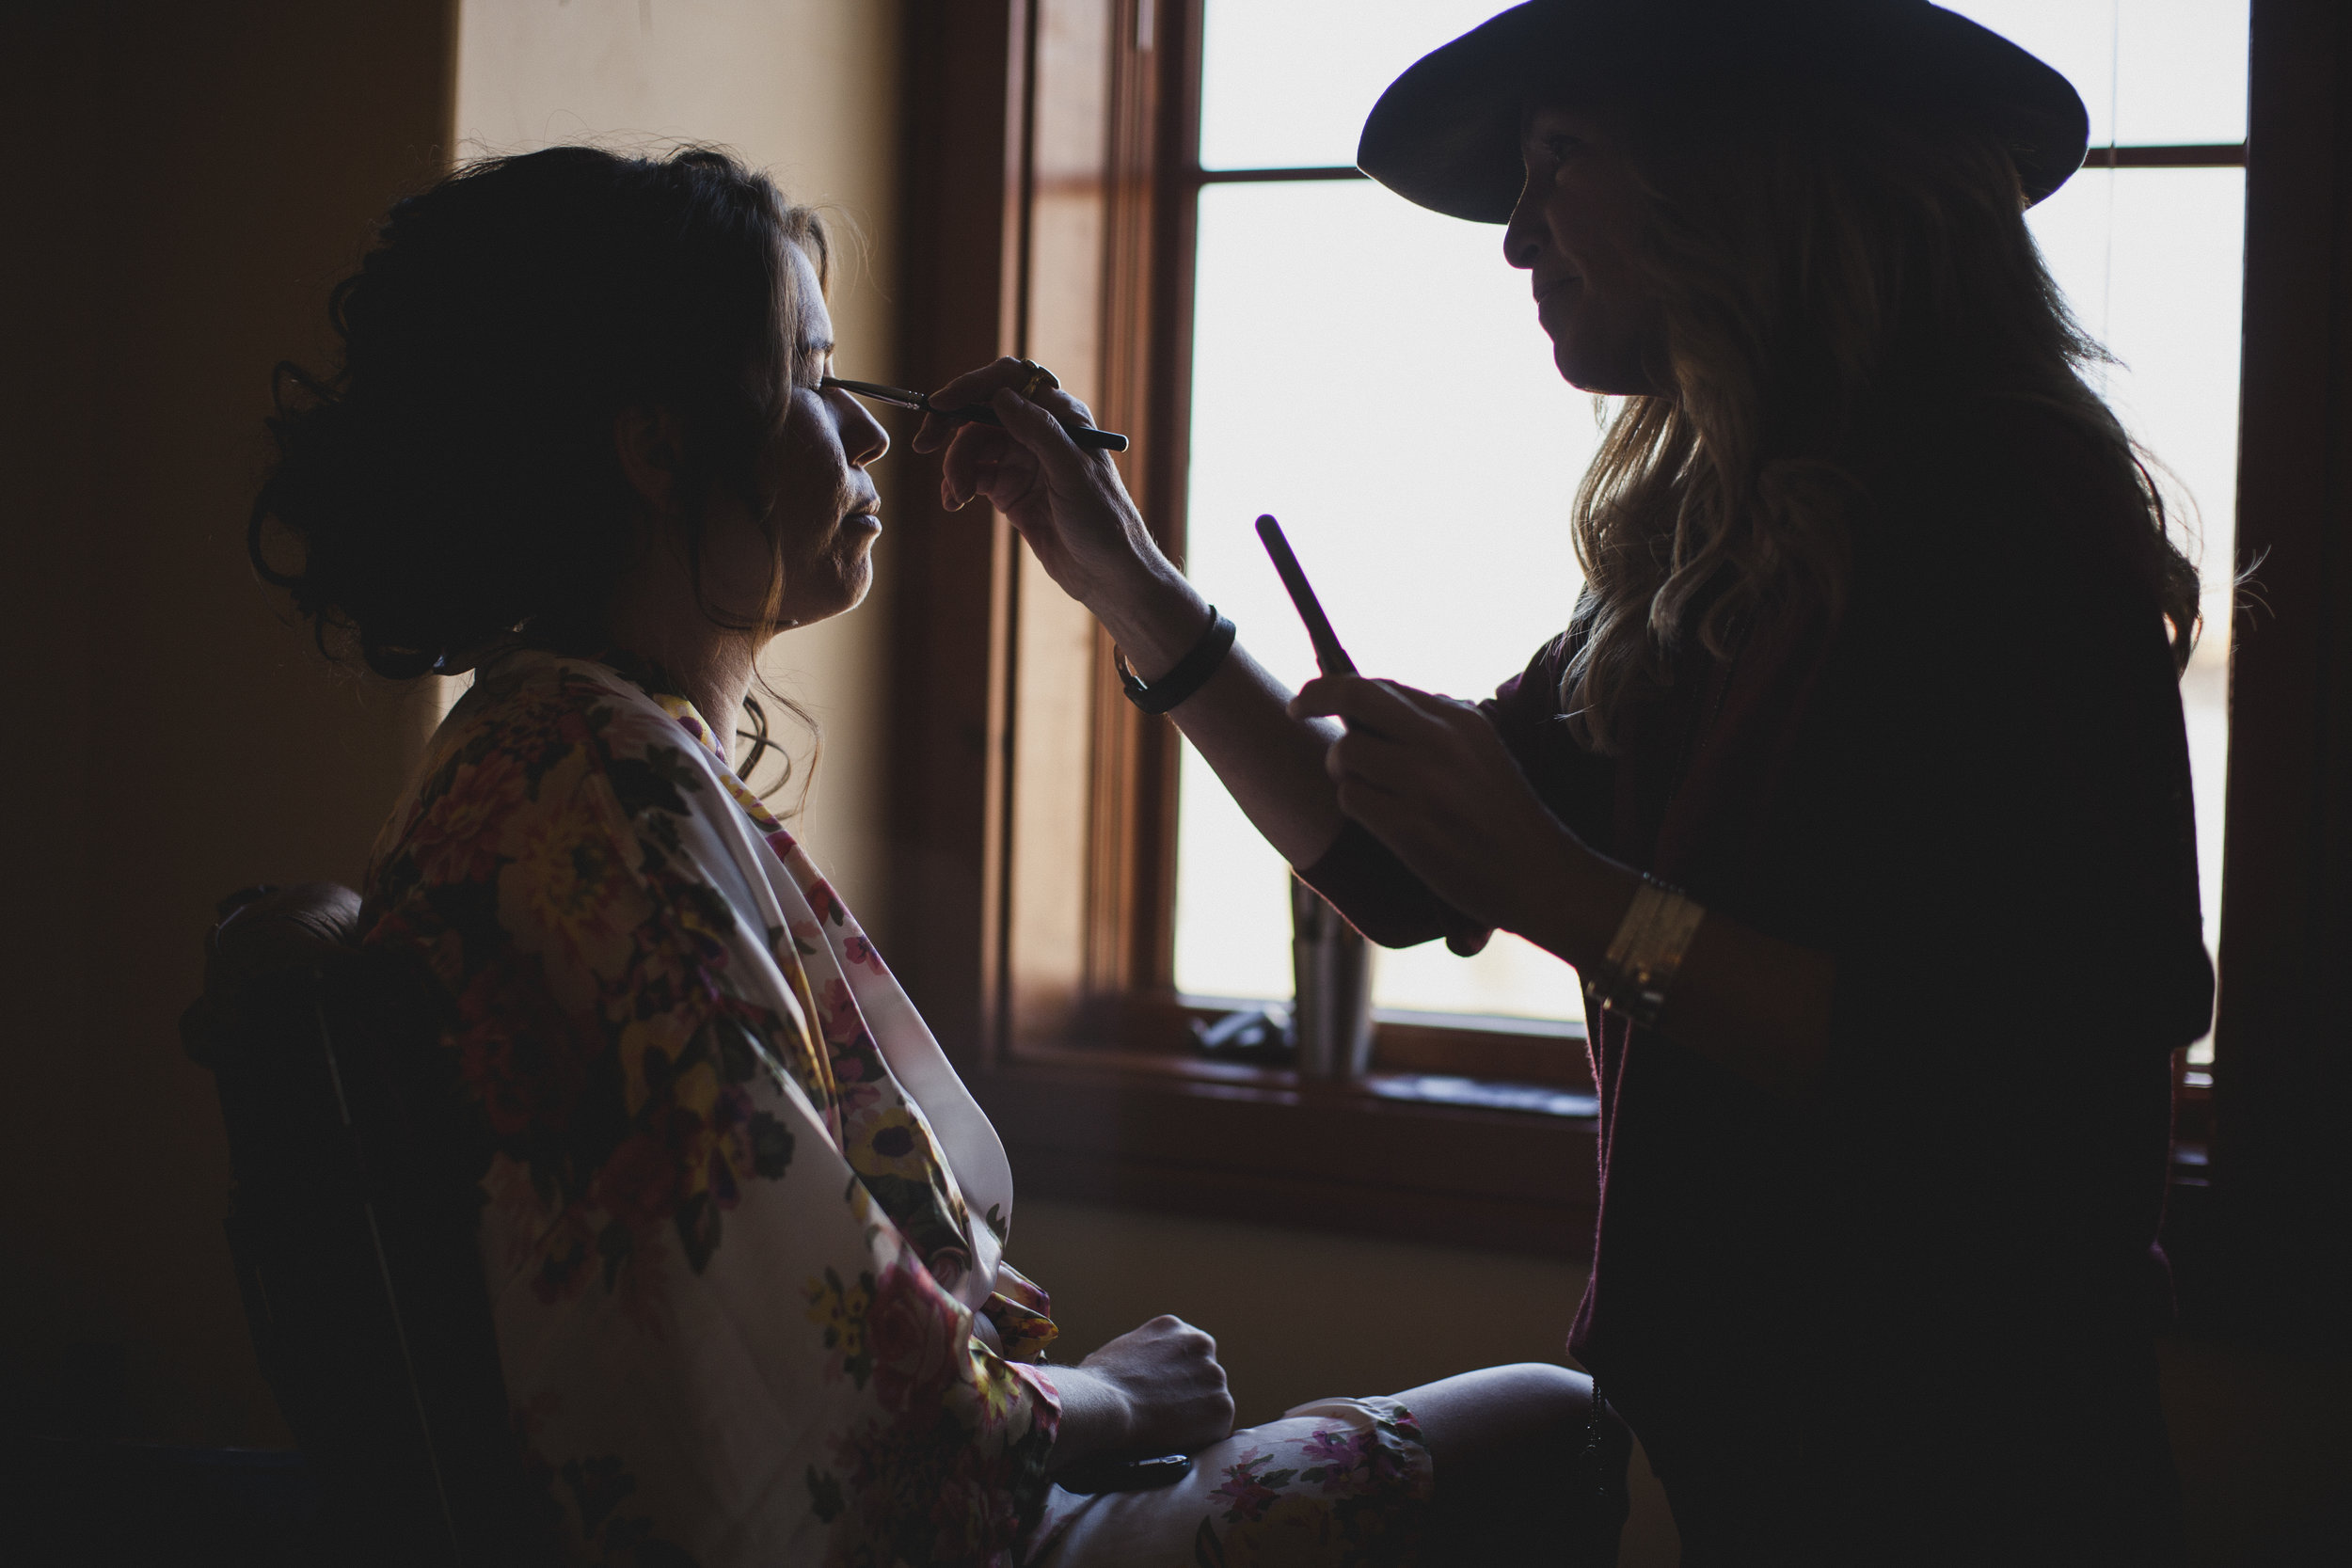 NE-LeahandAshtonphotography-Telluride-Wedding-Photography-6159.jpg